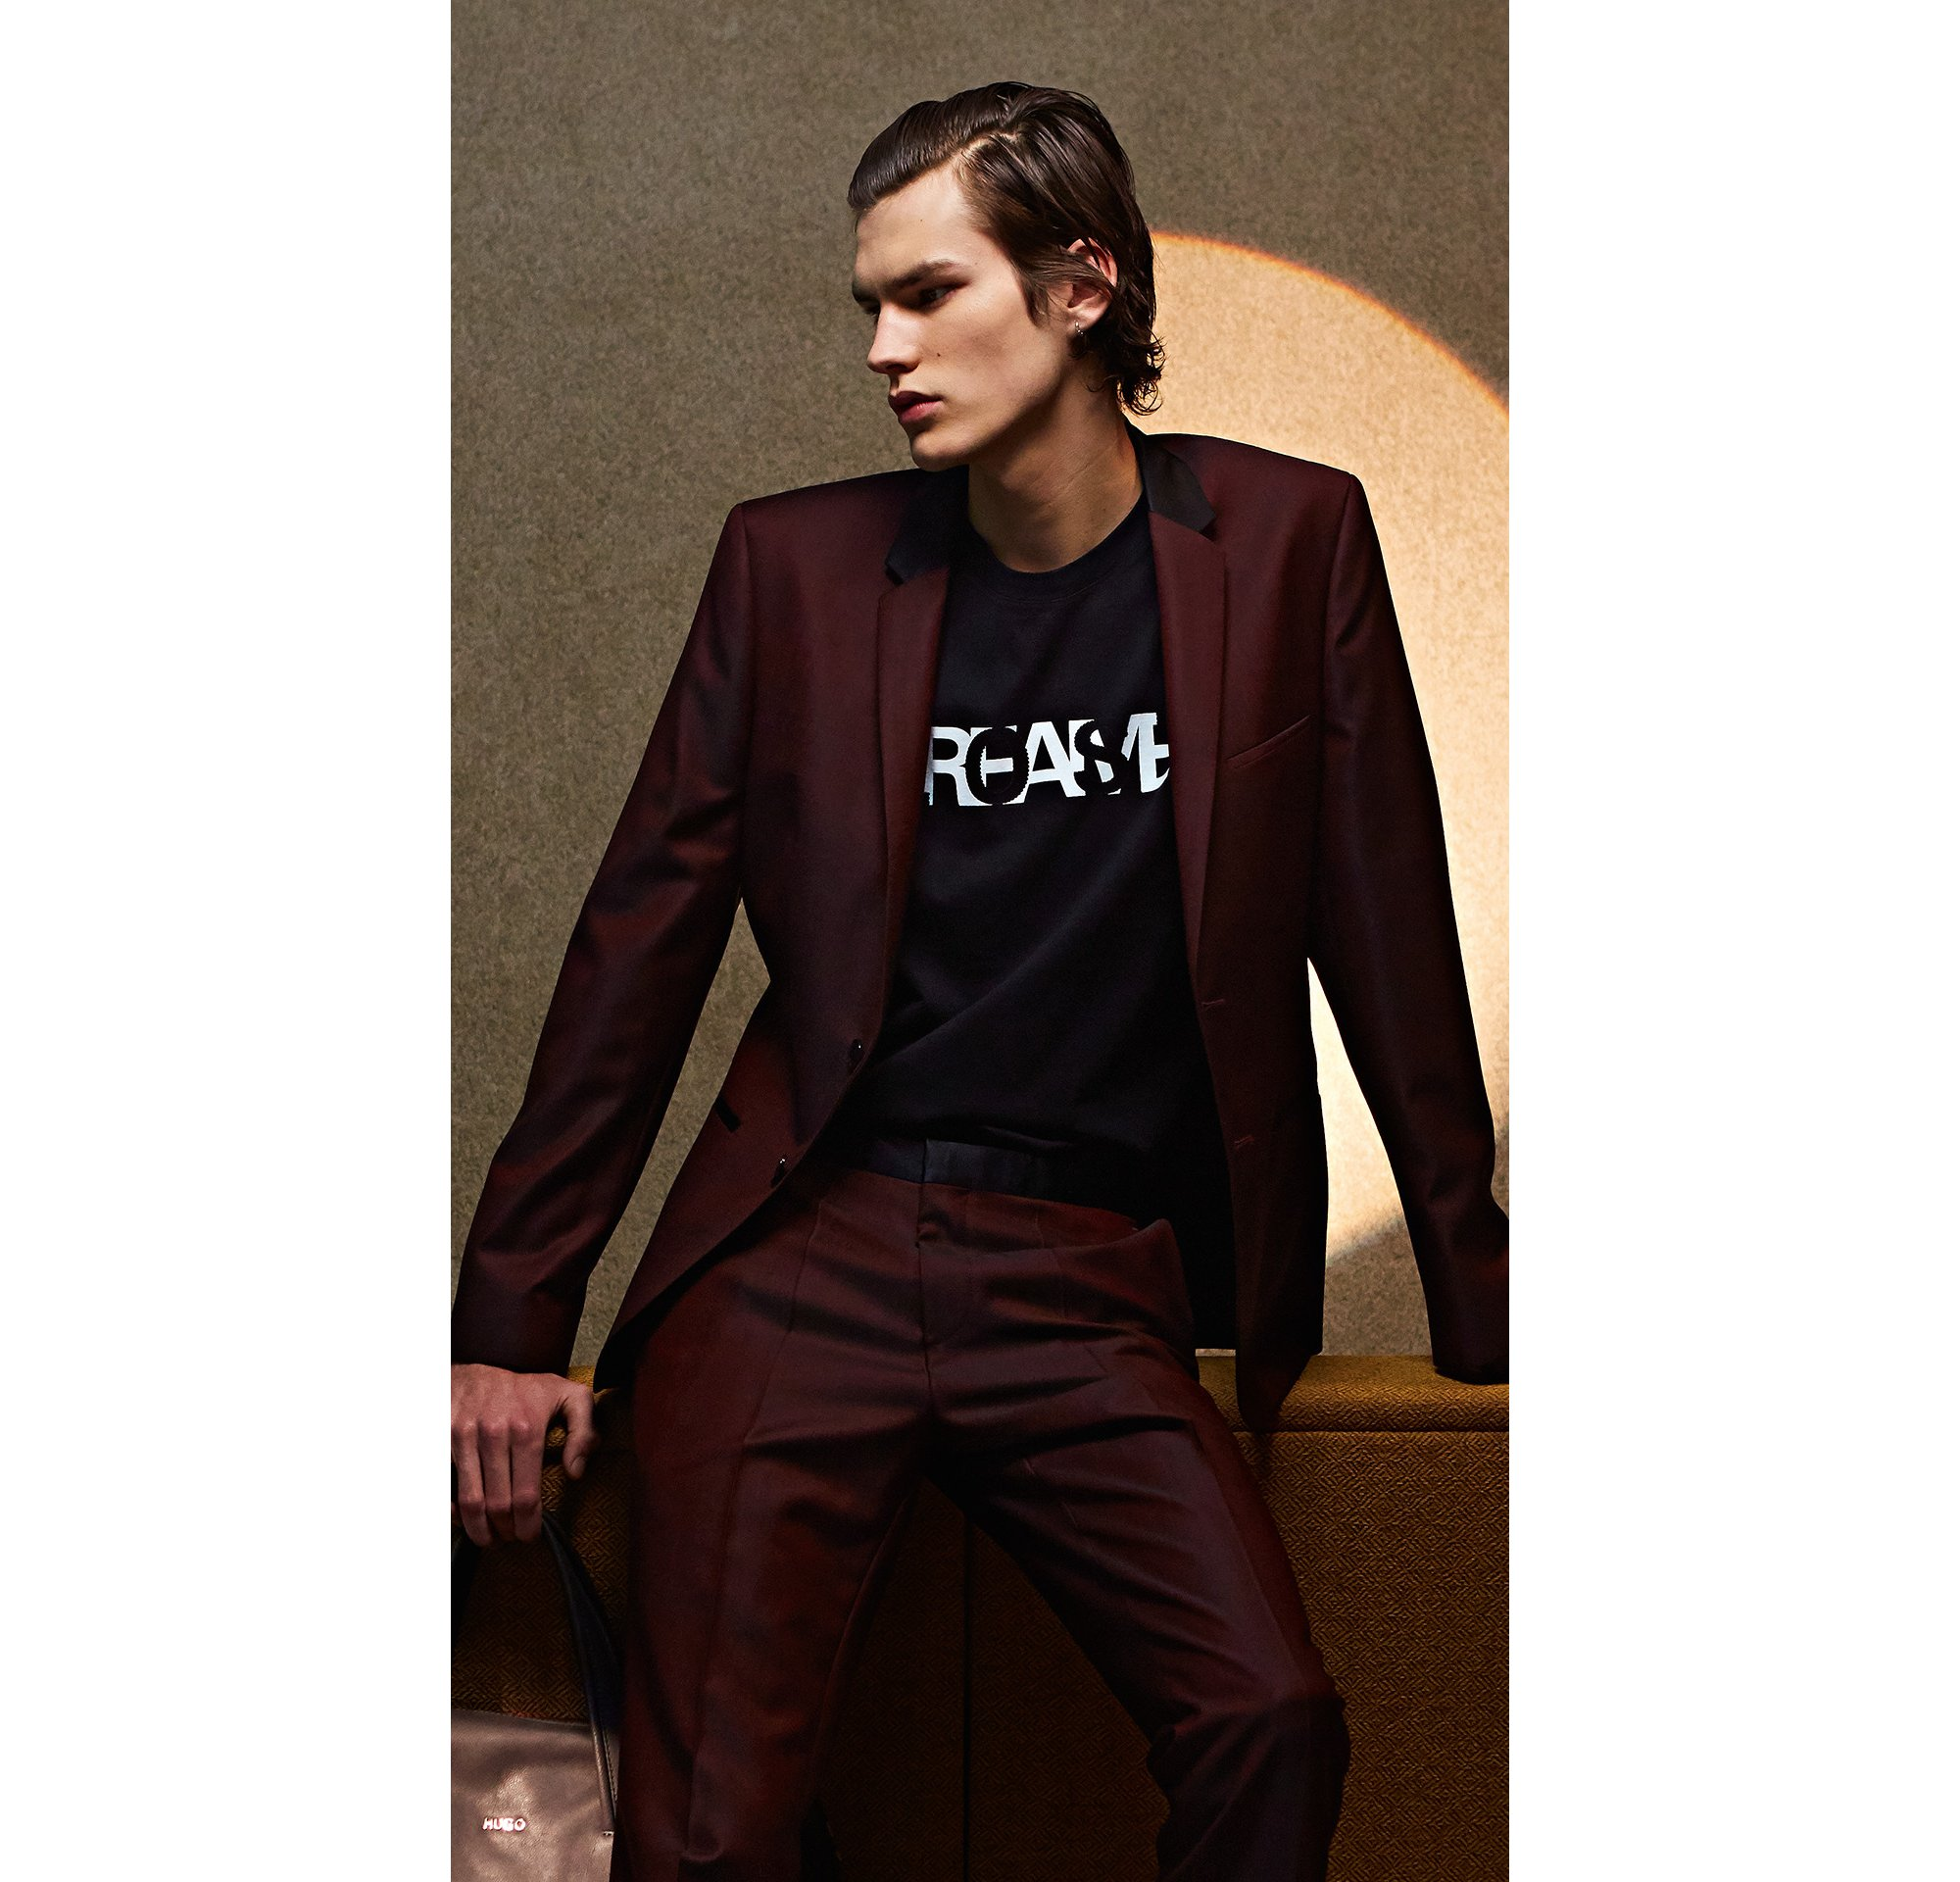 HUGO_Men_PF17_Look_29